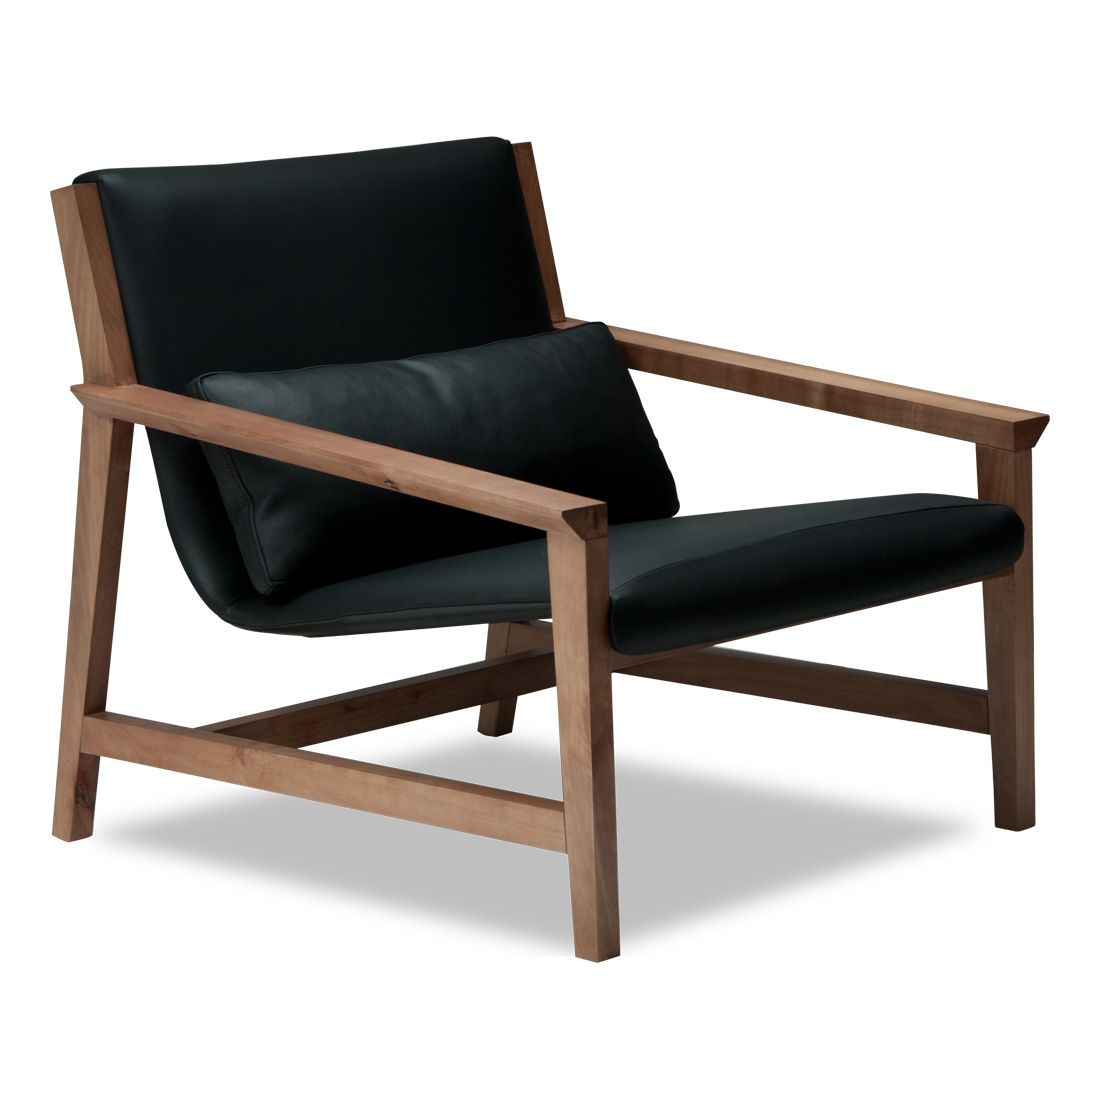 Design Stuhl Toro Thames Lounge Chair Furniture Idea Sessel Stühle Lounge Stuhl